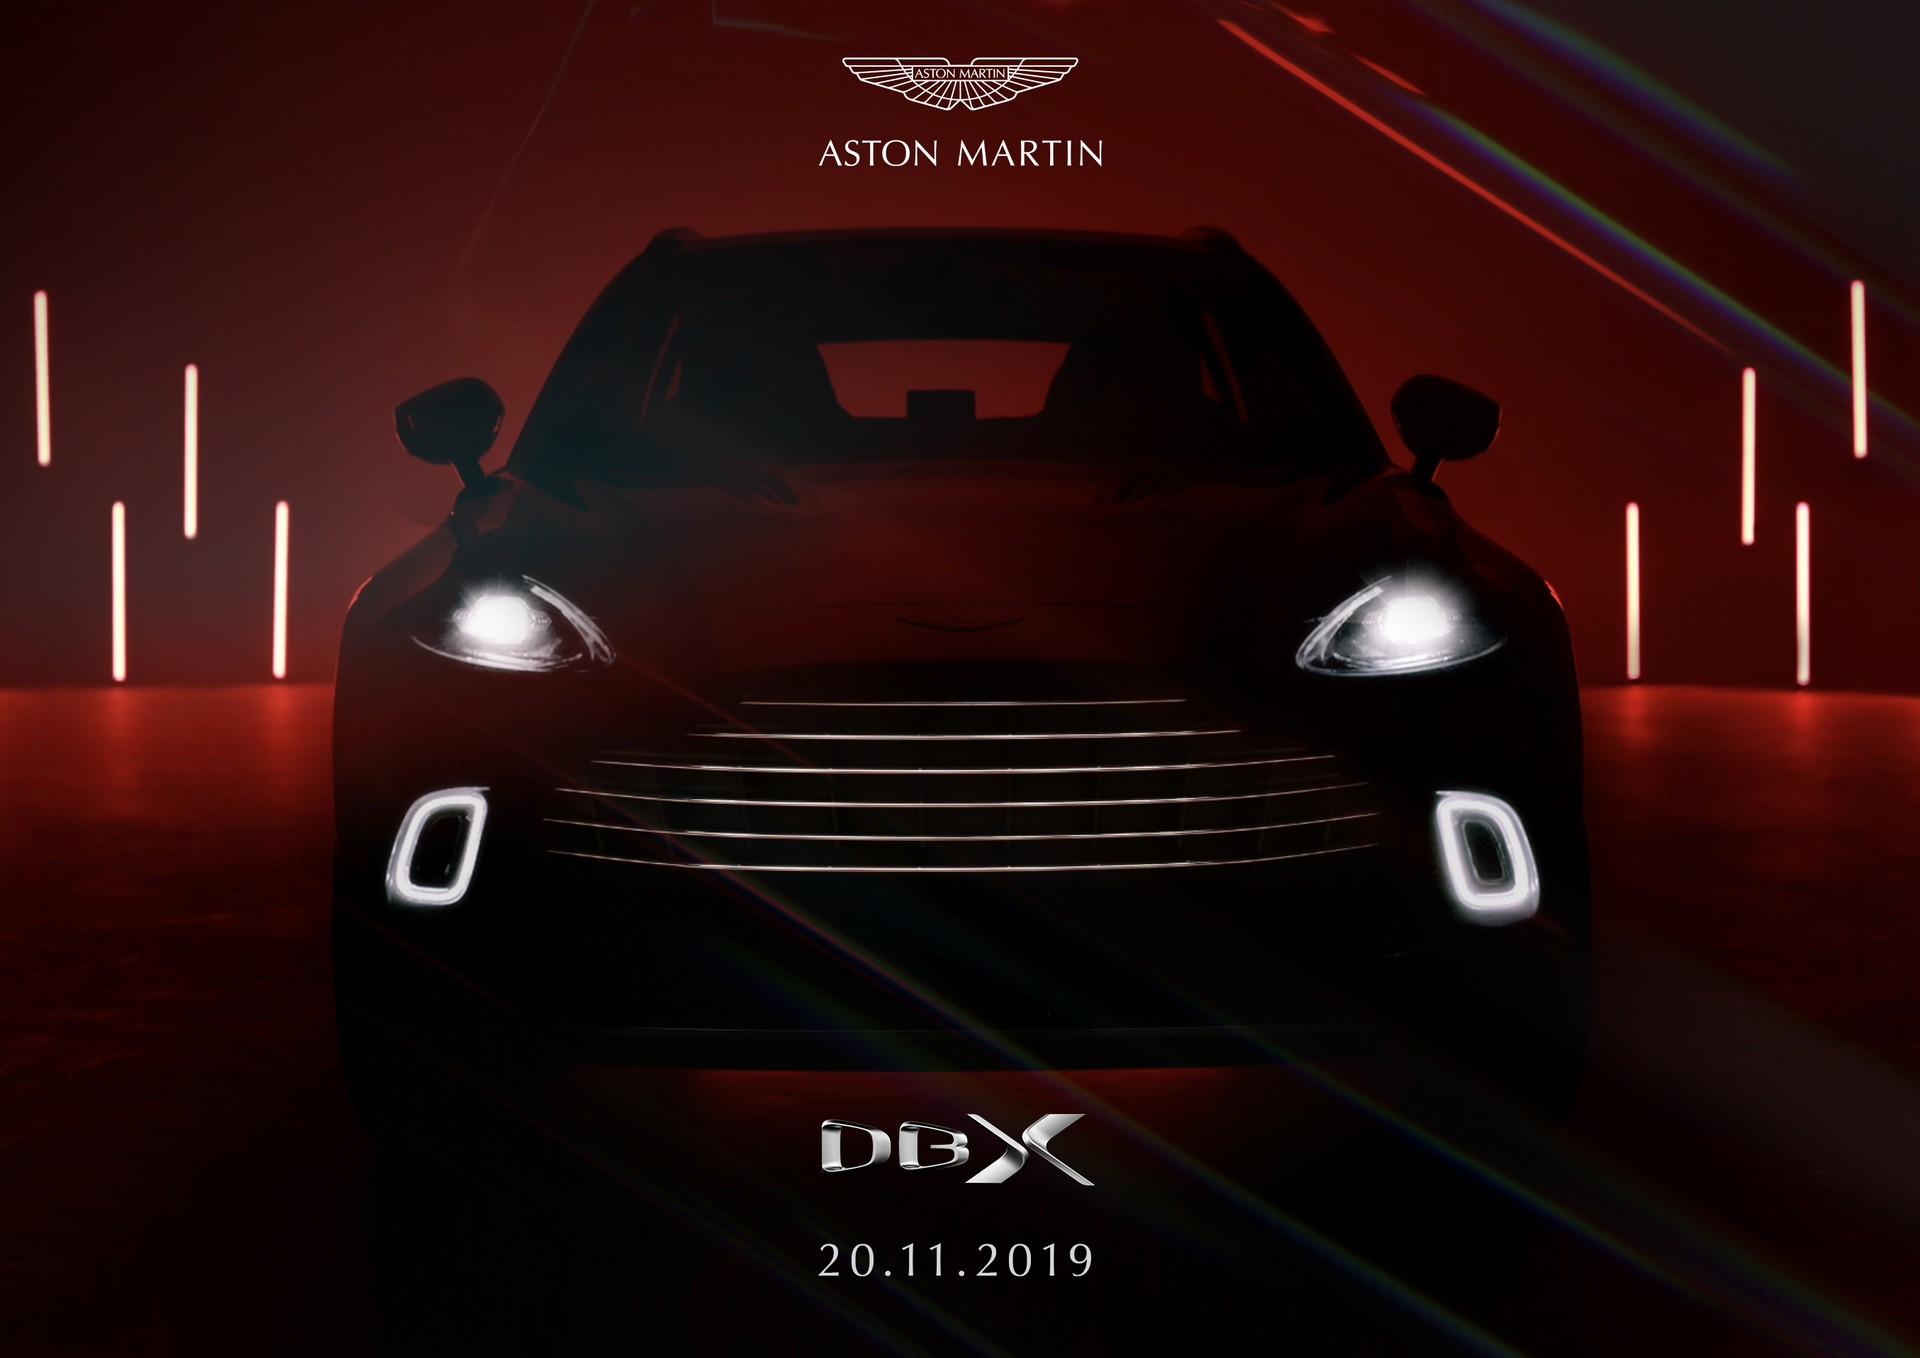 Aston Martin DBX to debut in Beijing on November 20